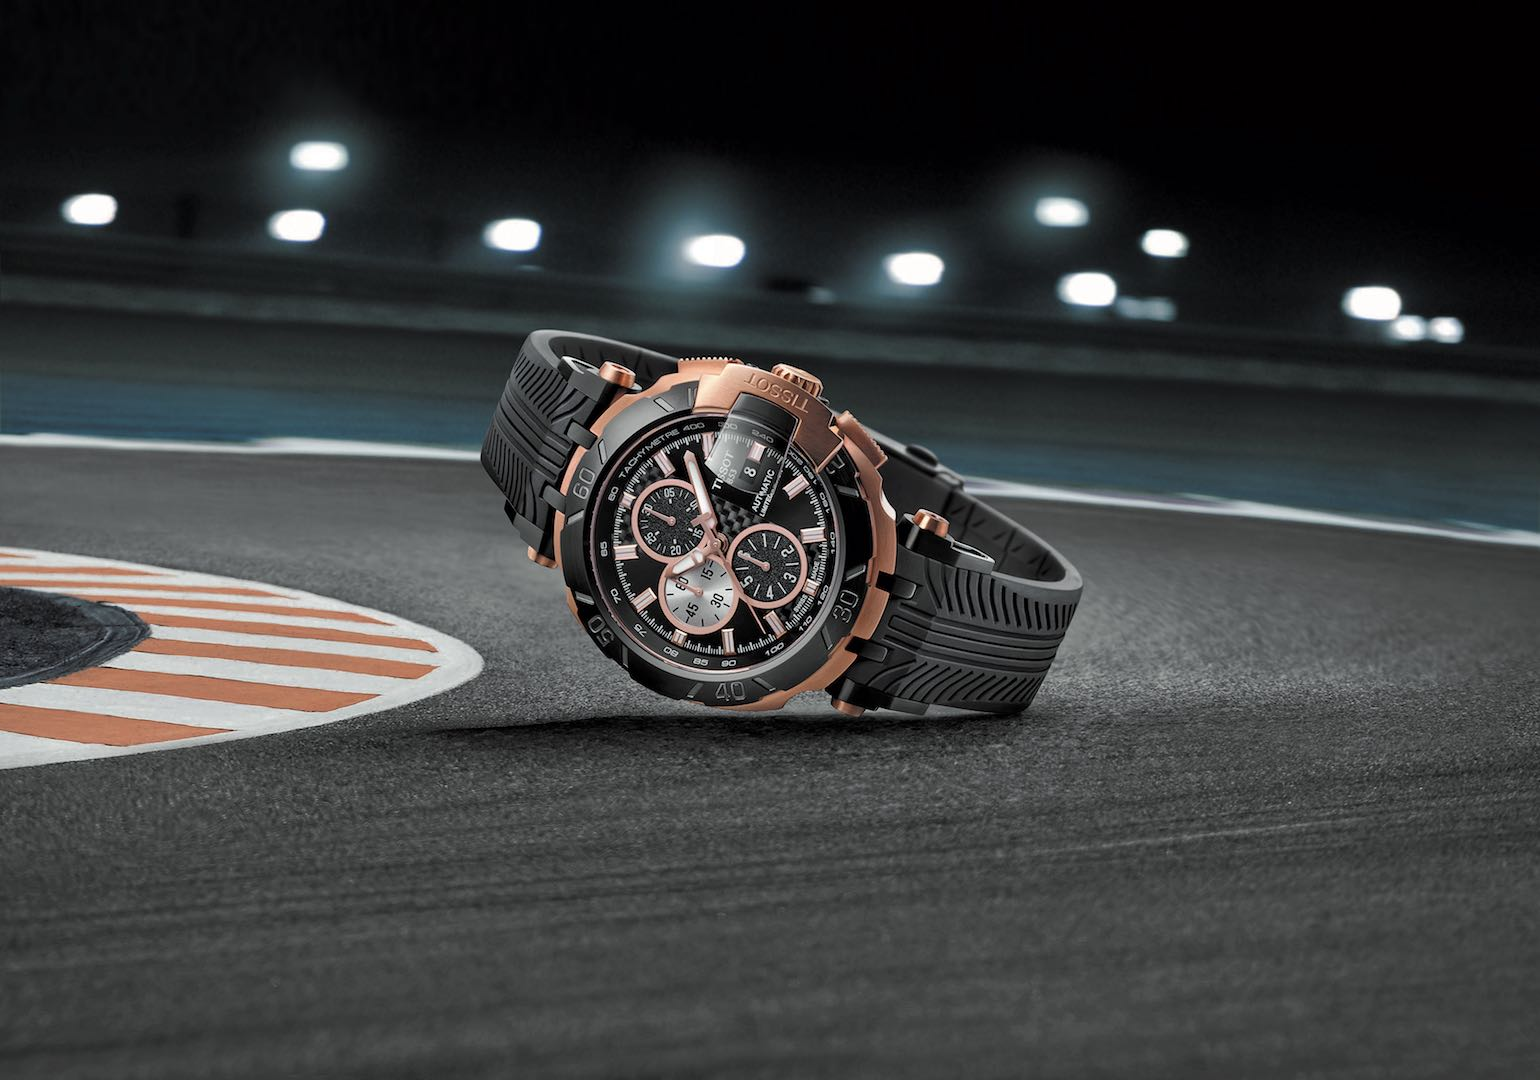 Tissot T-Race MotoGP Automatic Watch Unveiled: 2017 Limited Edition